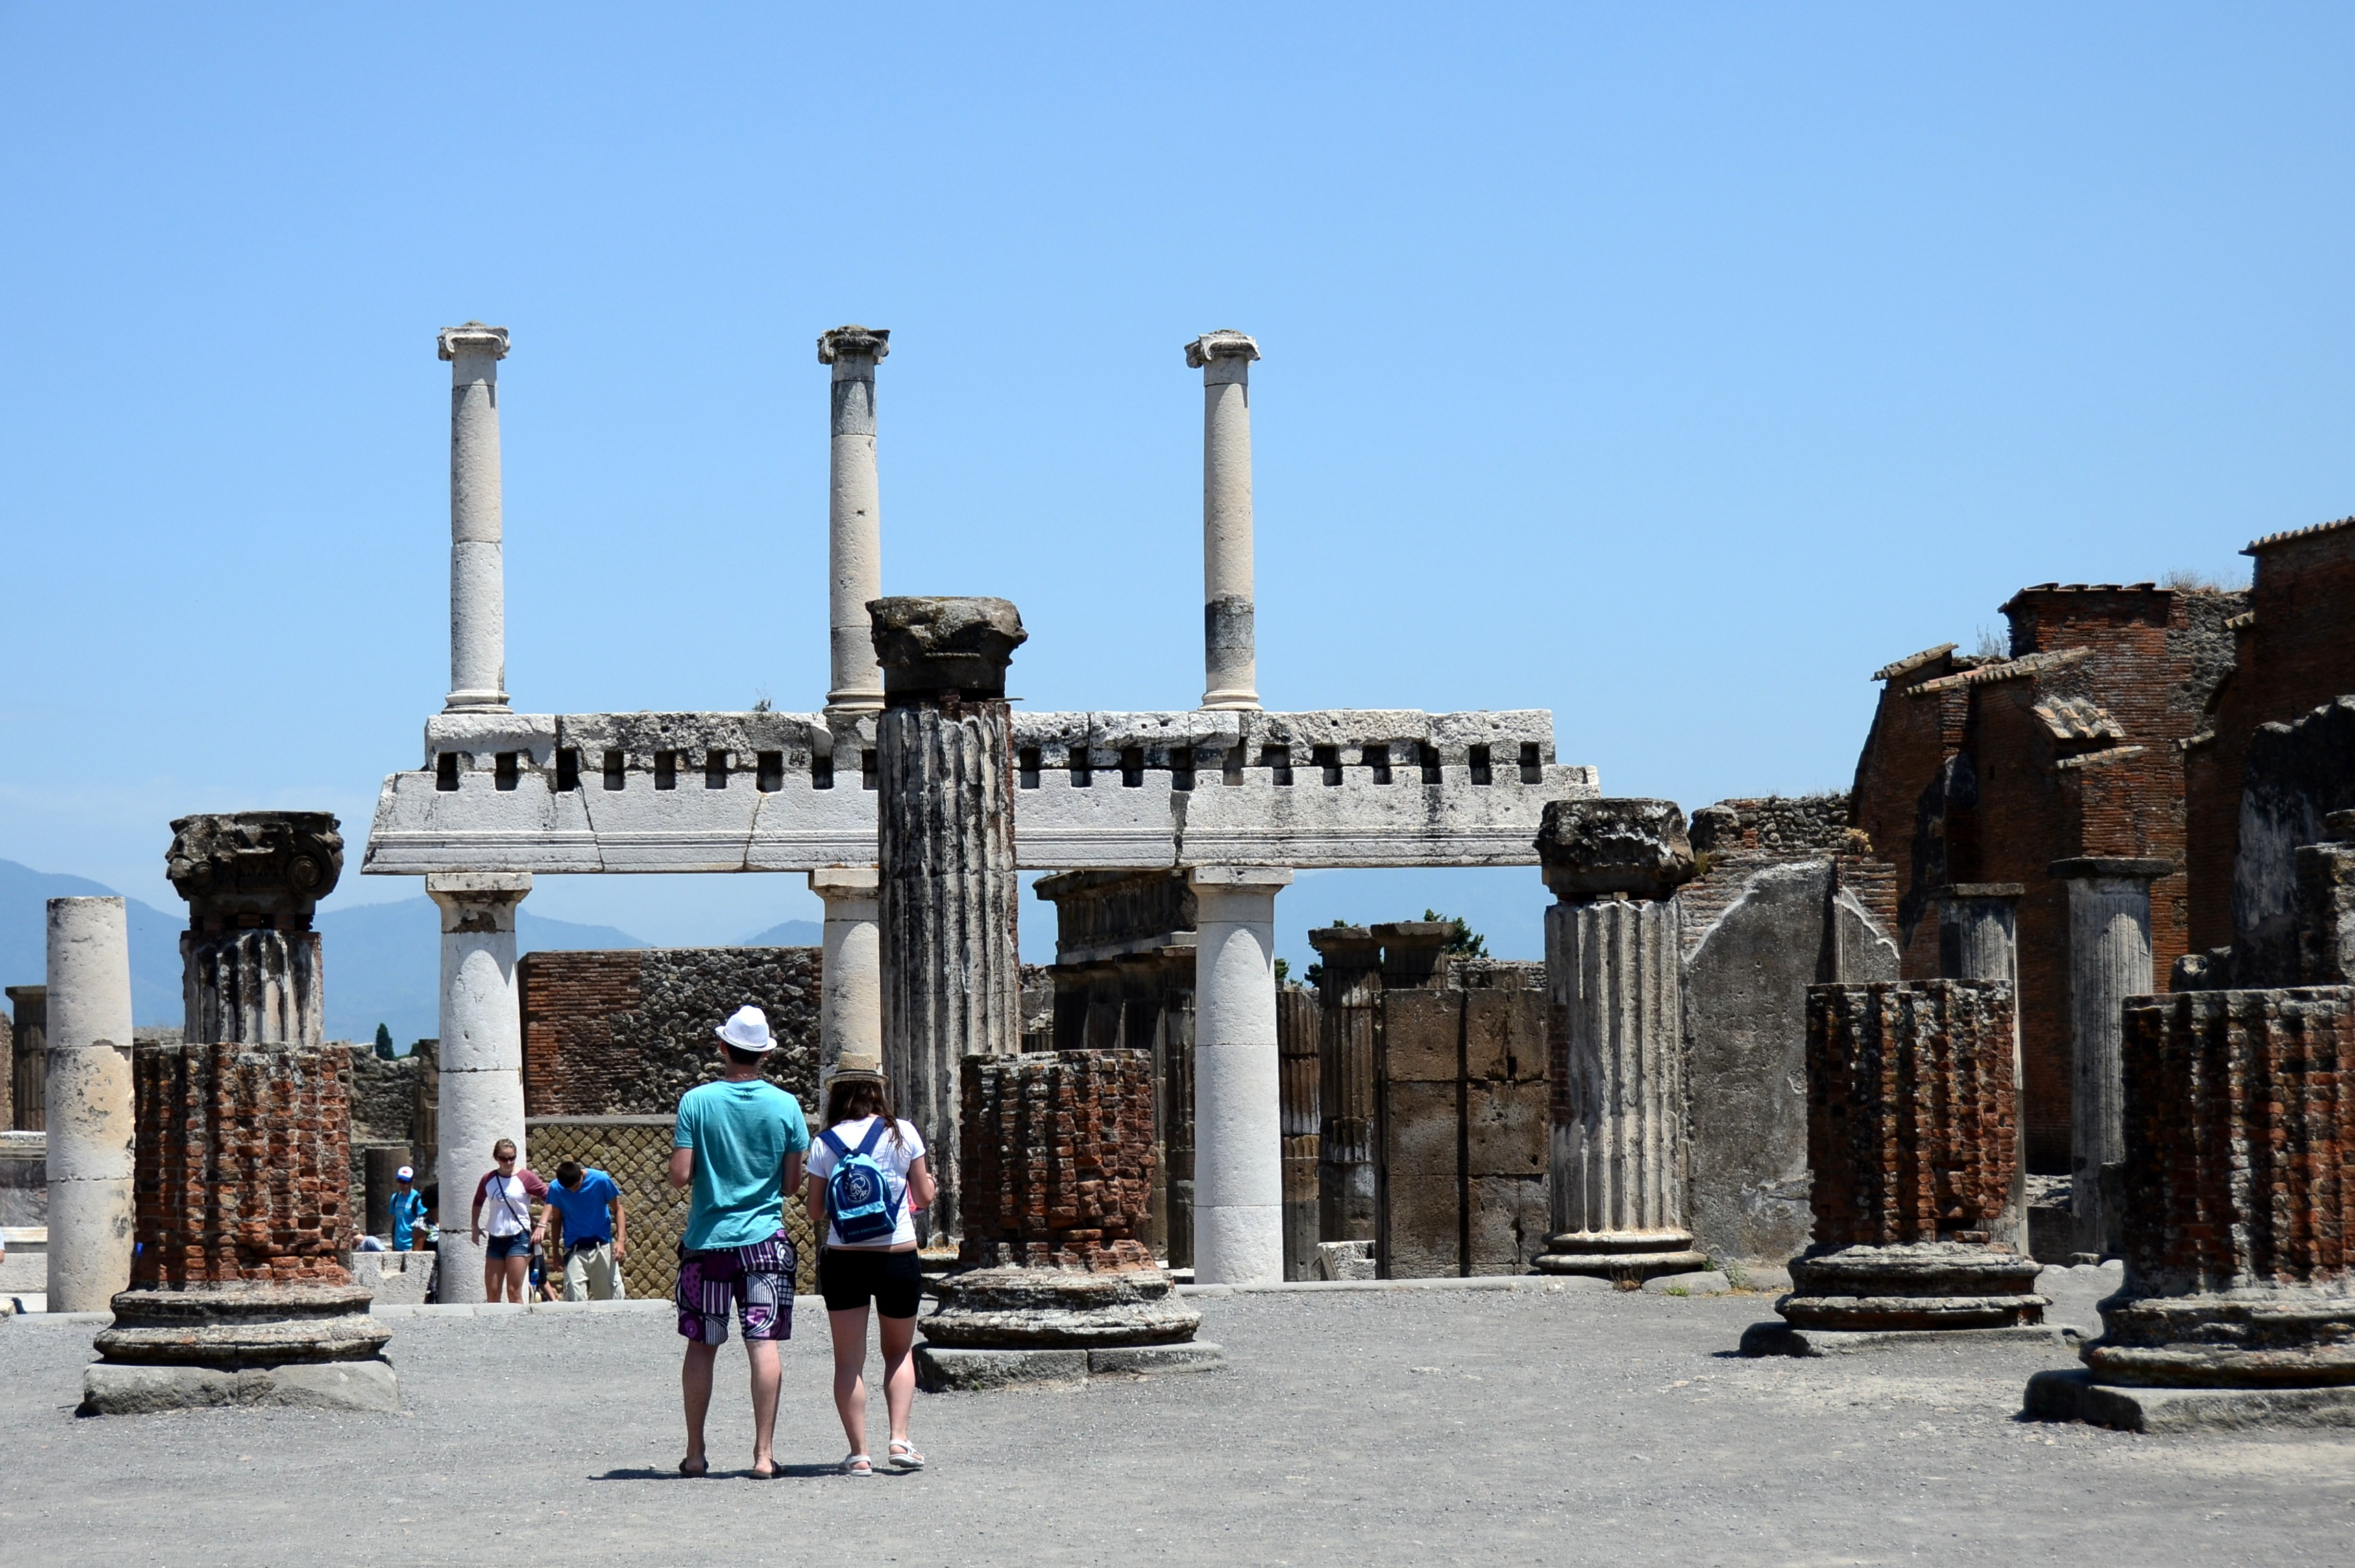 AMONG THE ANCIENT ASHES; POMPEI